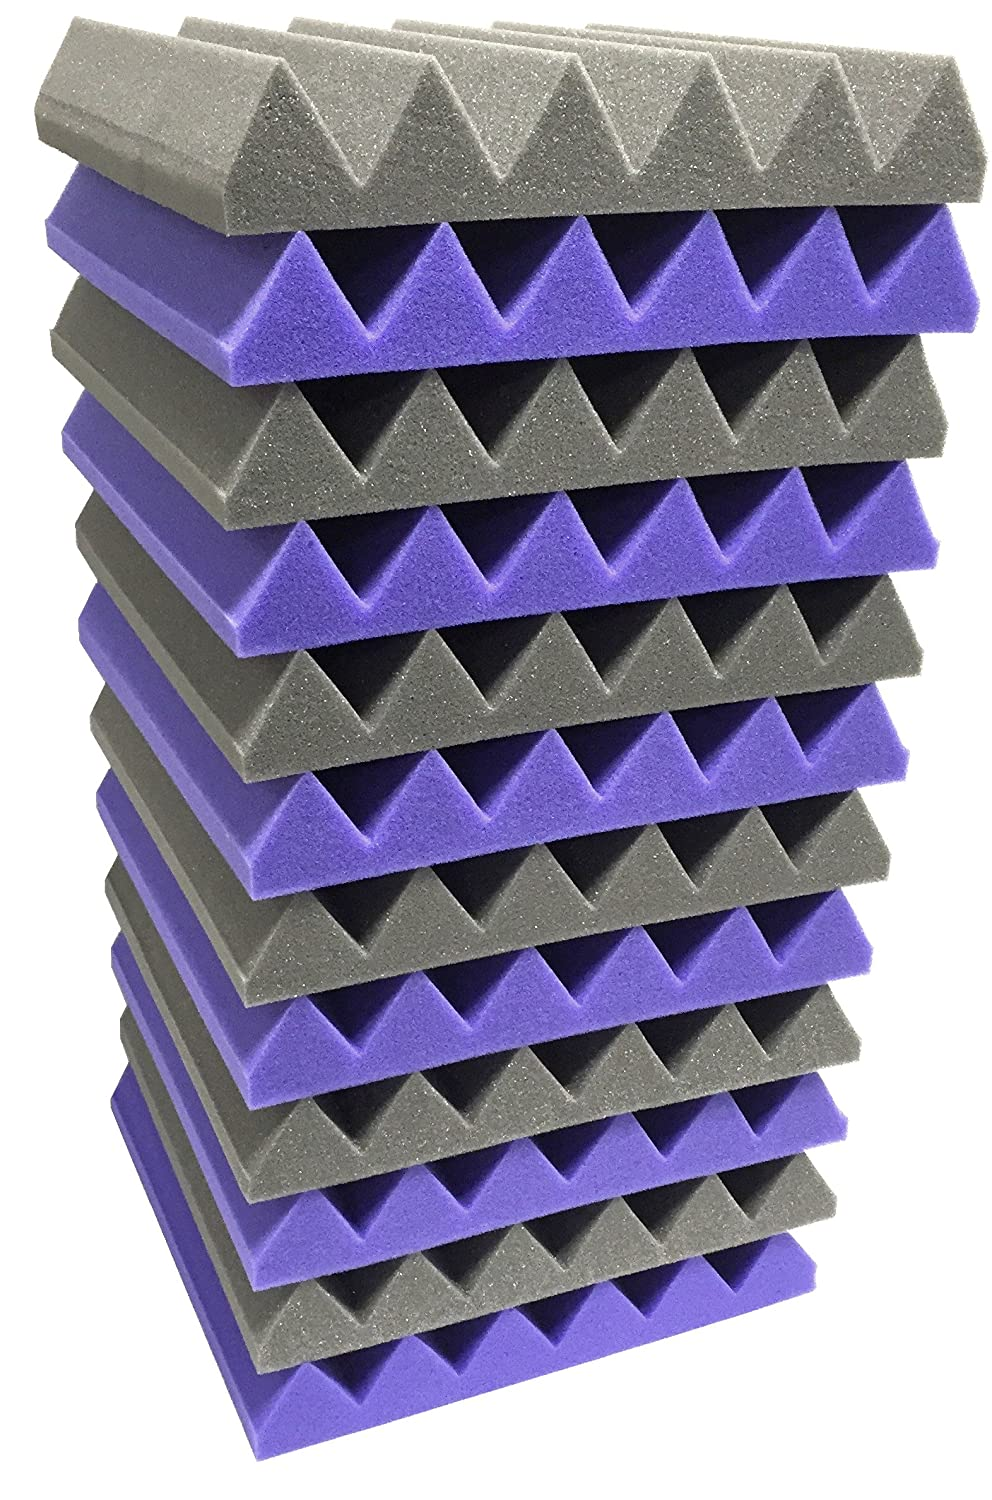 2x12x12 (12 Pack) ROYAL PURPLE/CHARCOAL Acoustic Wedge Soundproofing Studio Foam Tiles Soundproof Store Sou-4576